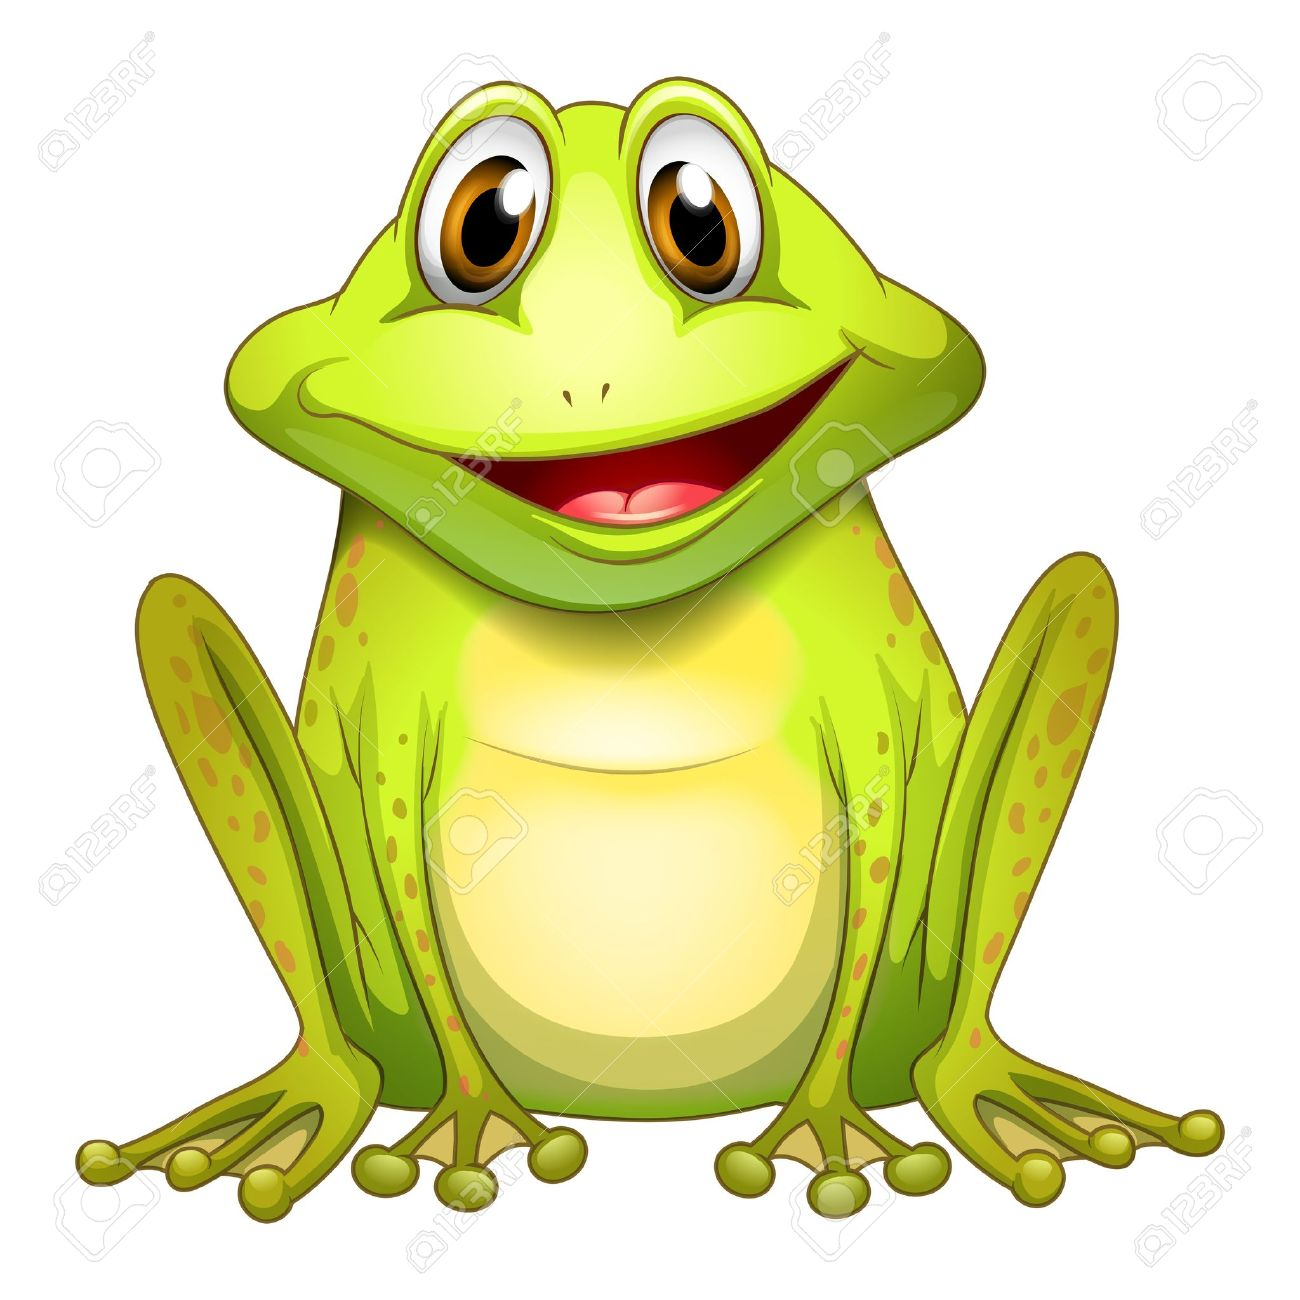 728 bullfrog stock illustrations cliparts and royalty free bullfrog rh 123rf com american bullfrog clipart Baby Bullfrogs